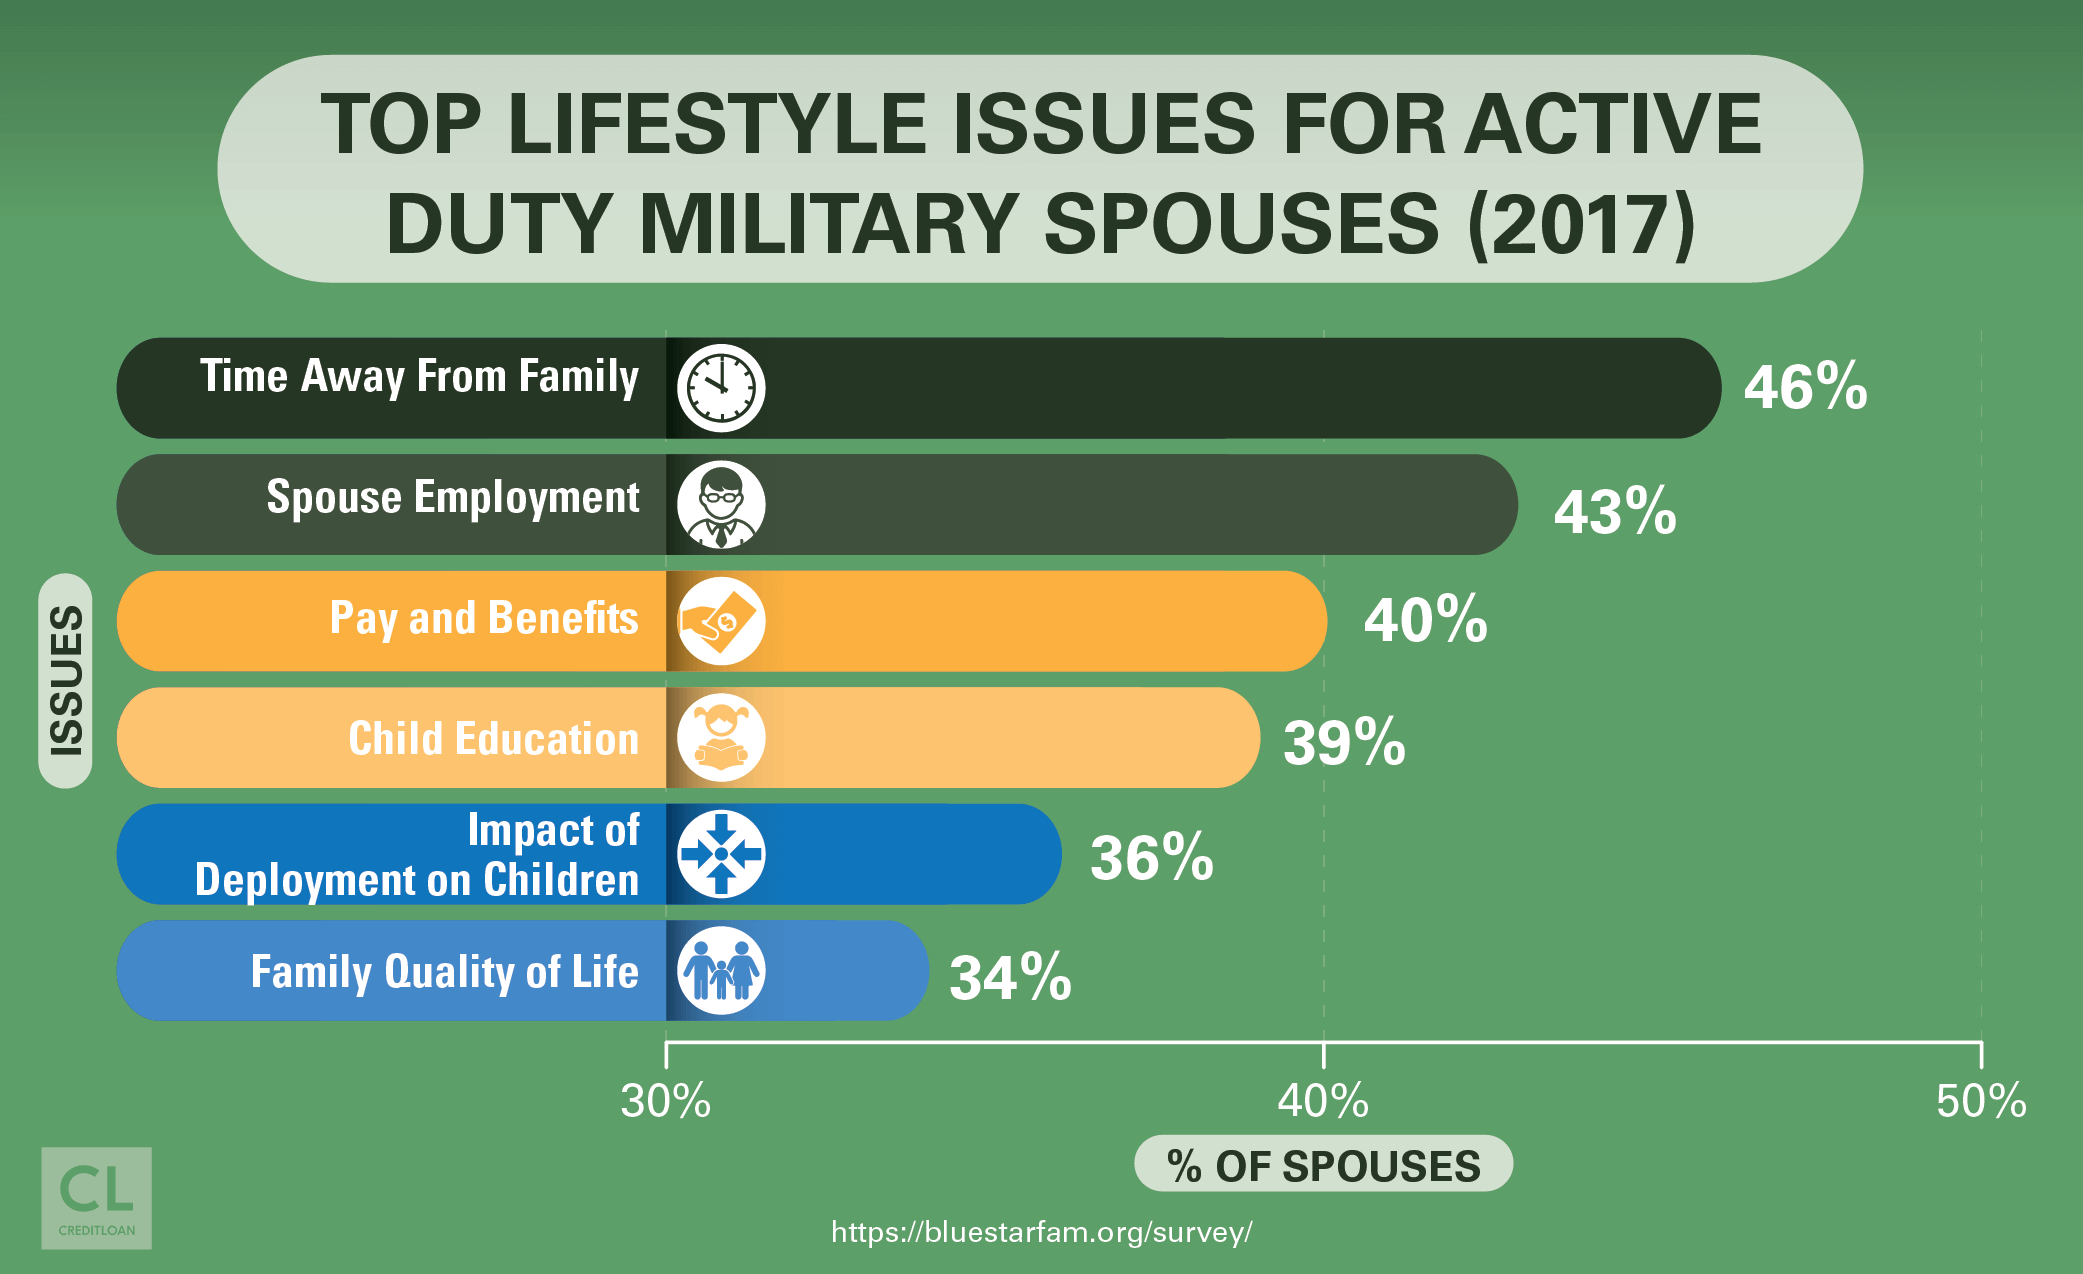 Top Lifestyle Issues for Active Duty Military Spouses 2017